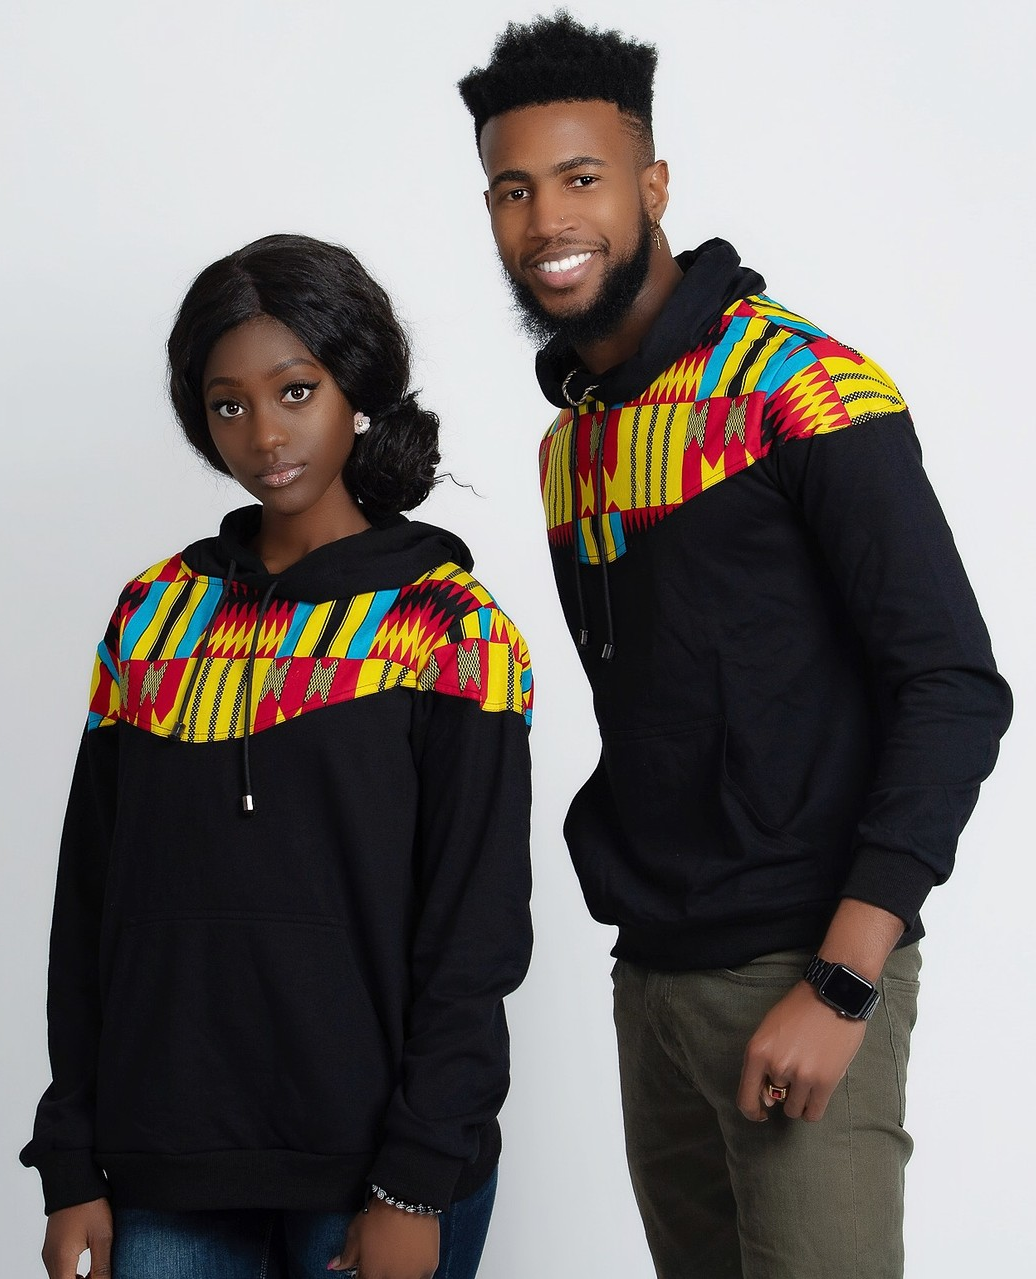 Unisex African Kente Hoodie Couples African Outfits African Clothing For Men African Men Fashion [ 1279 x 1036 Pixel ]